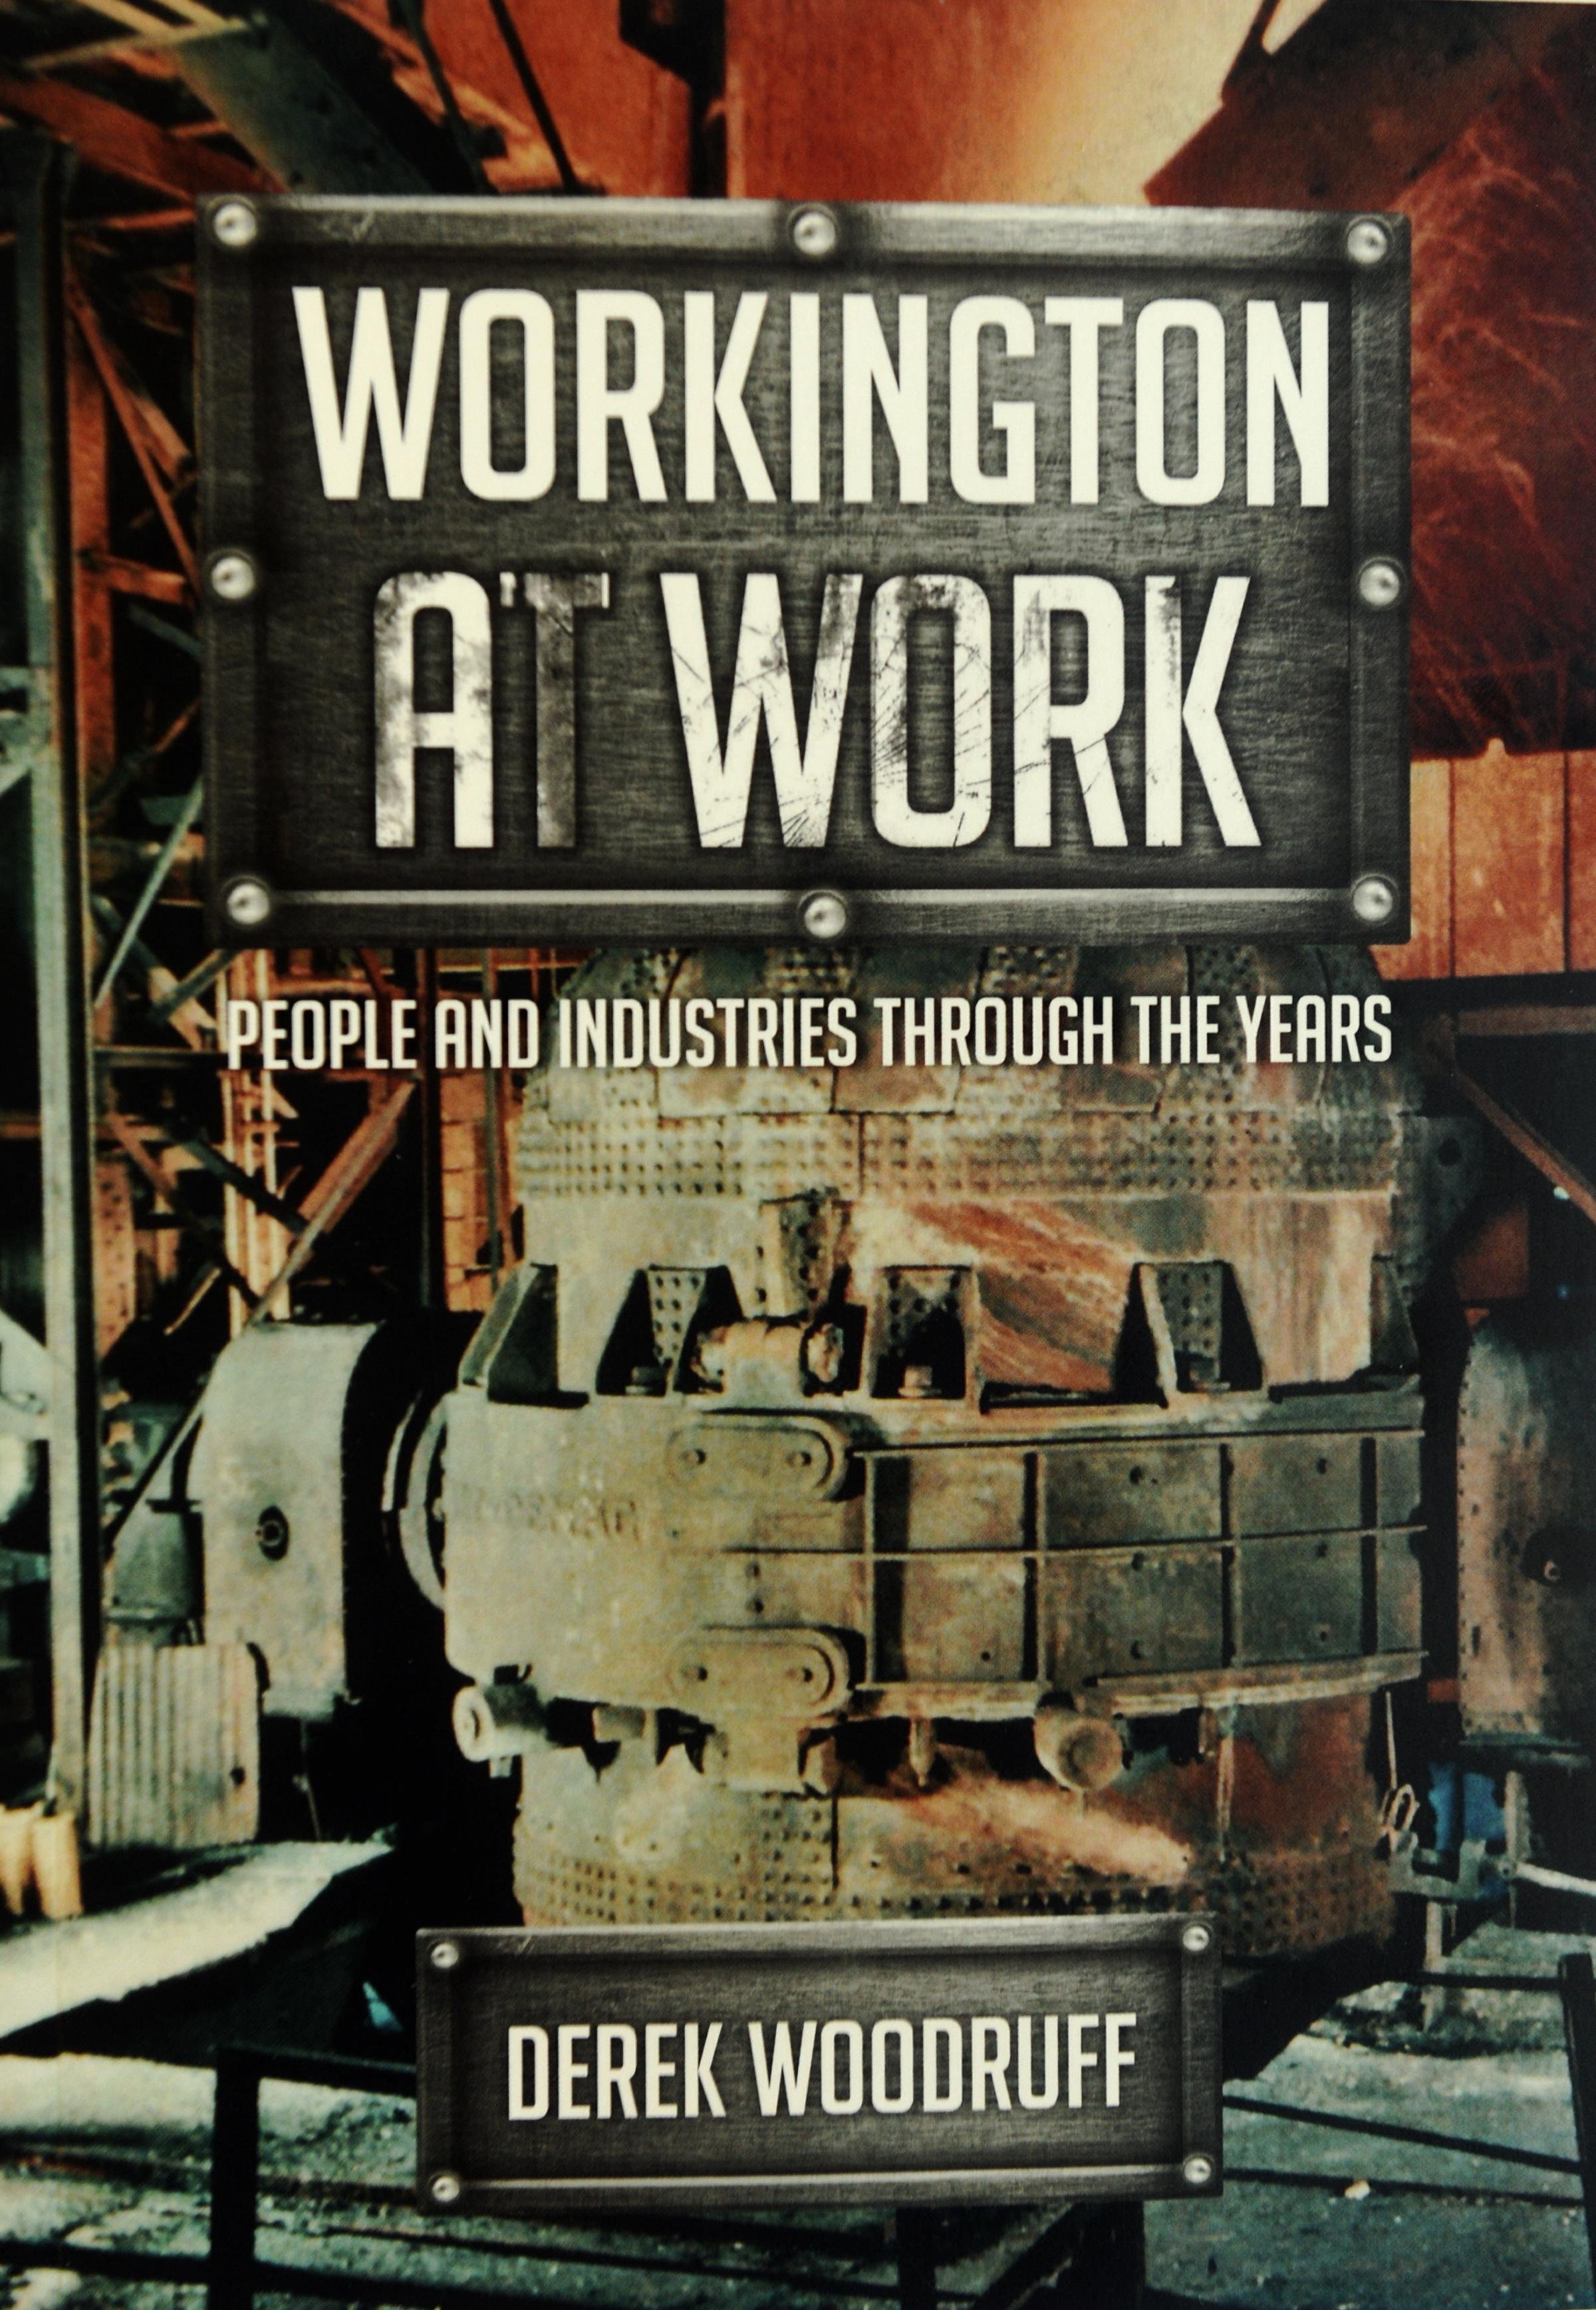 Workington at Work by Derek Woodruff